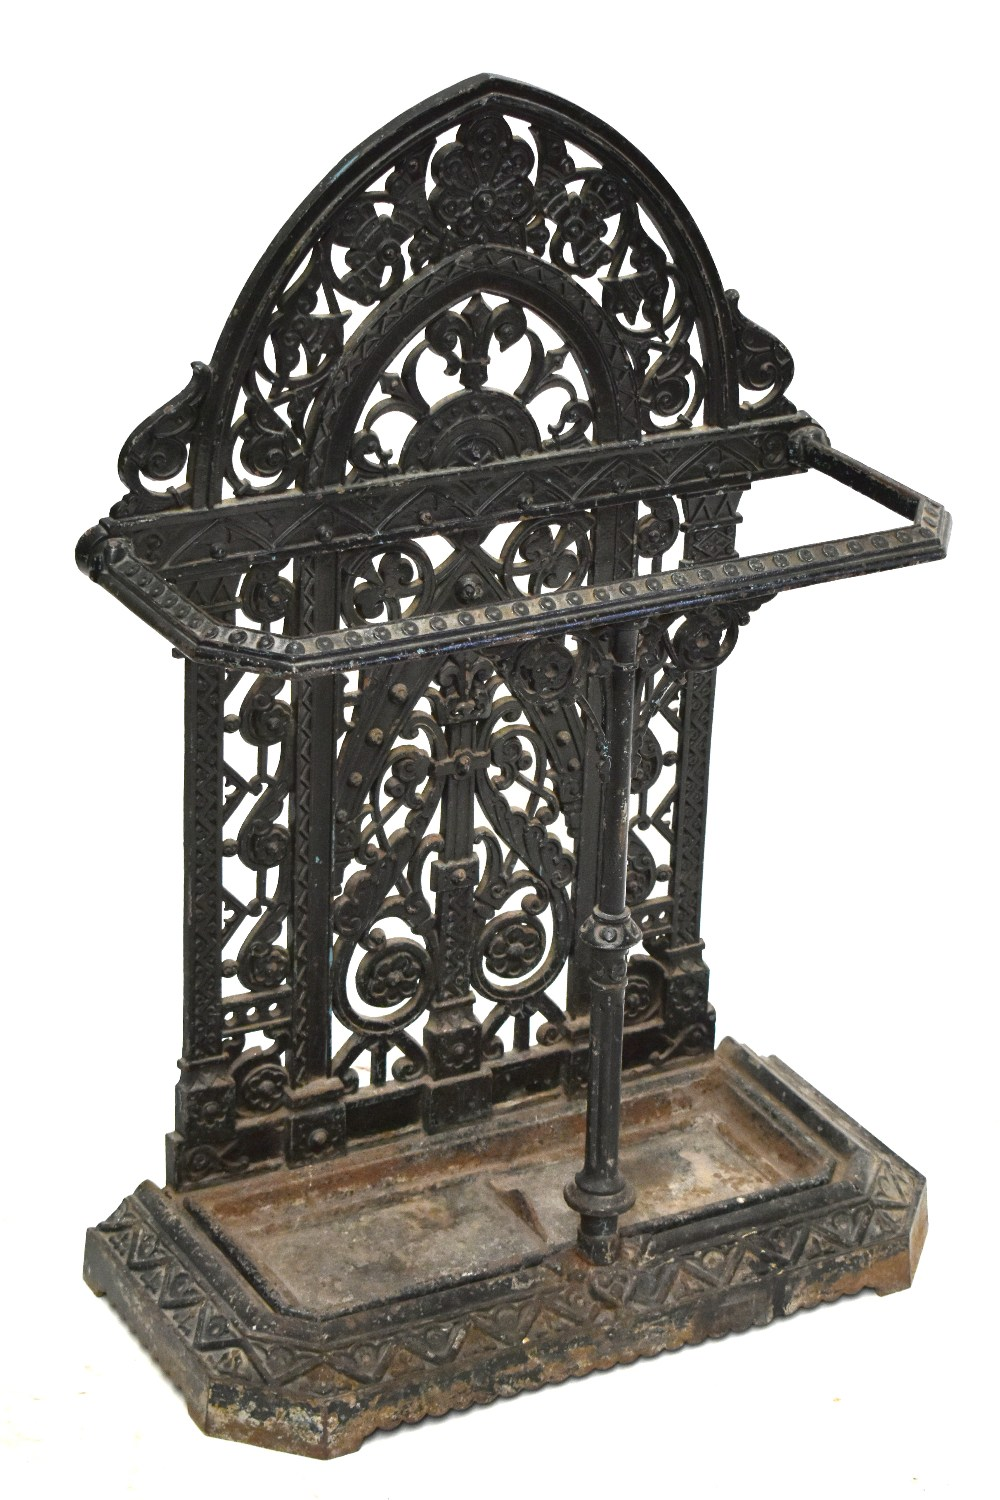 FALKIRK; a 19th century umbrella/stick stand with cast floral decoration and central section, with